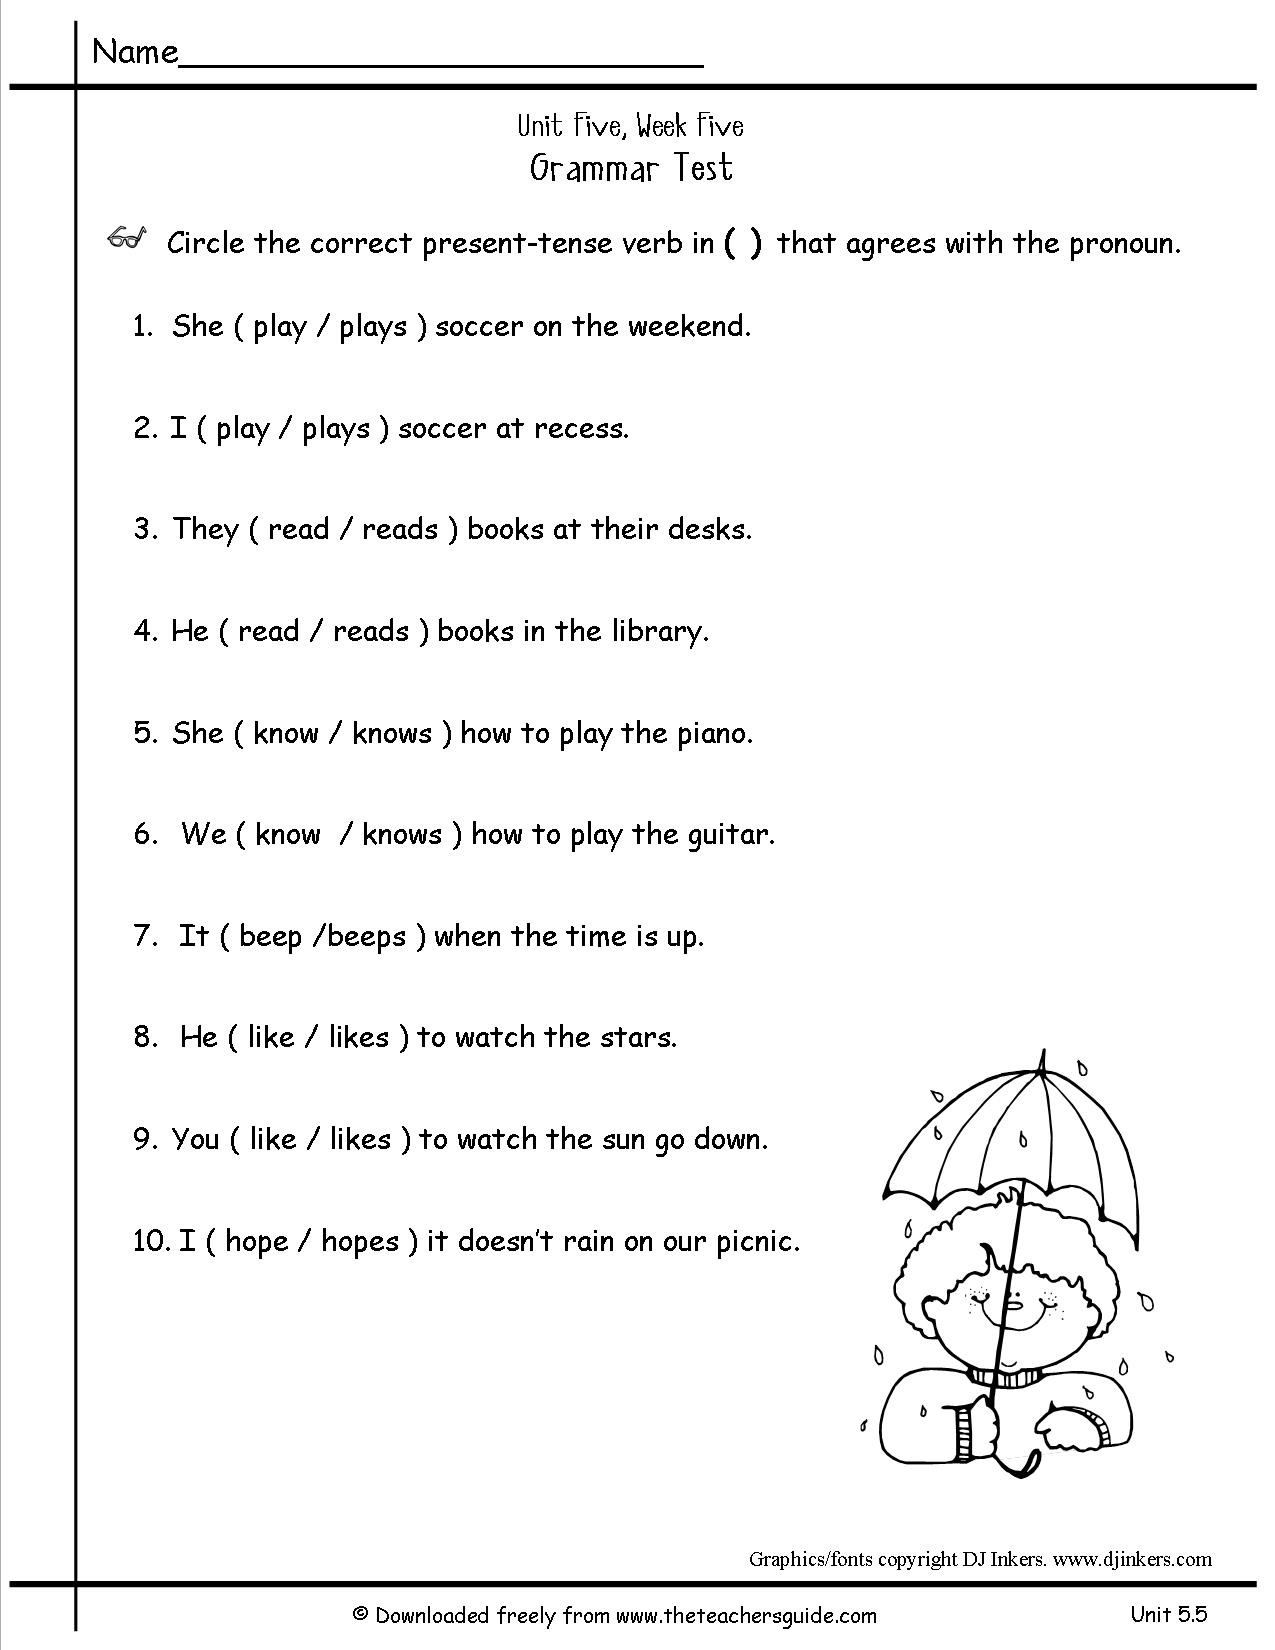 Pronoun Worksheet For 2nd Grade The Best Worksheets Image